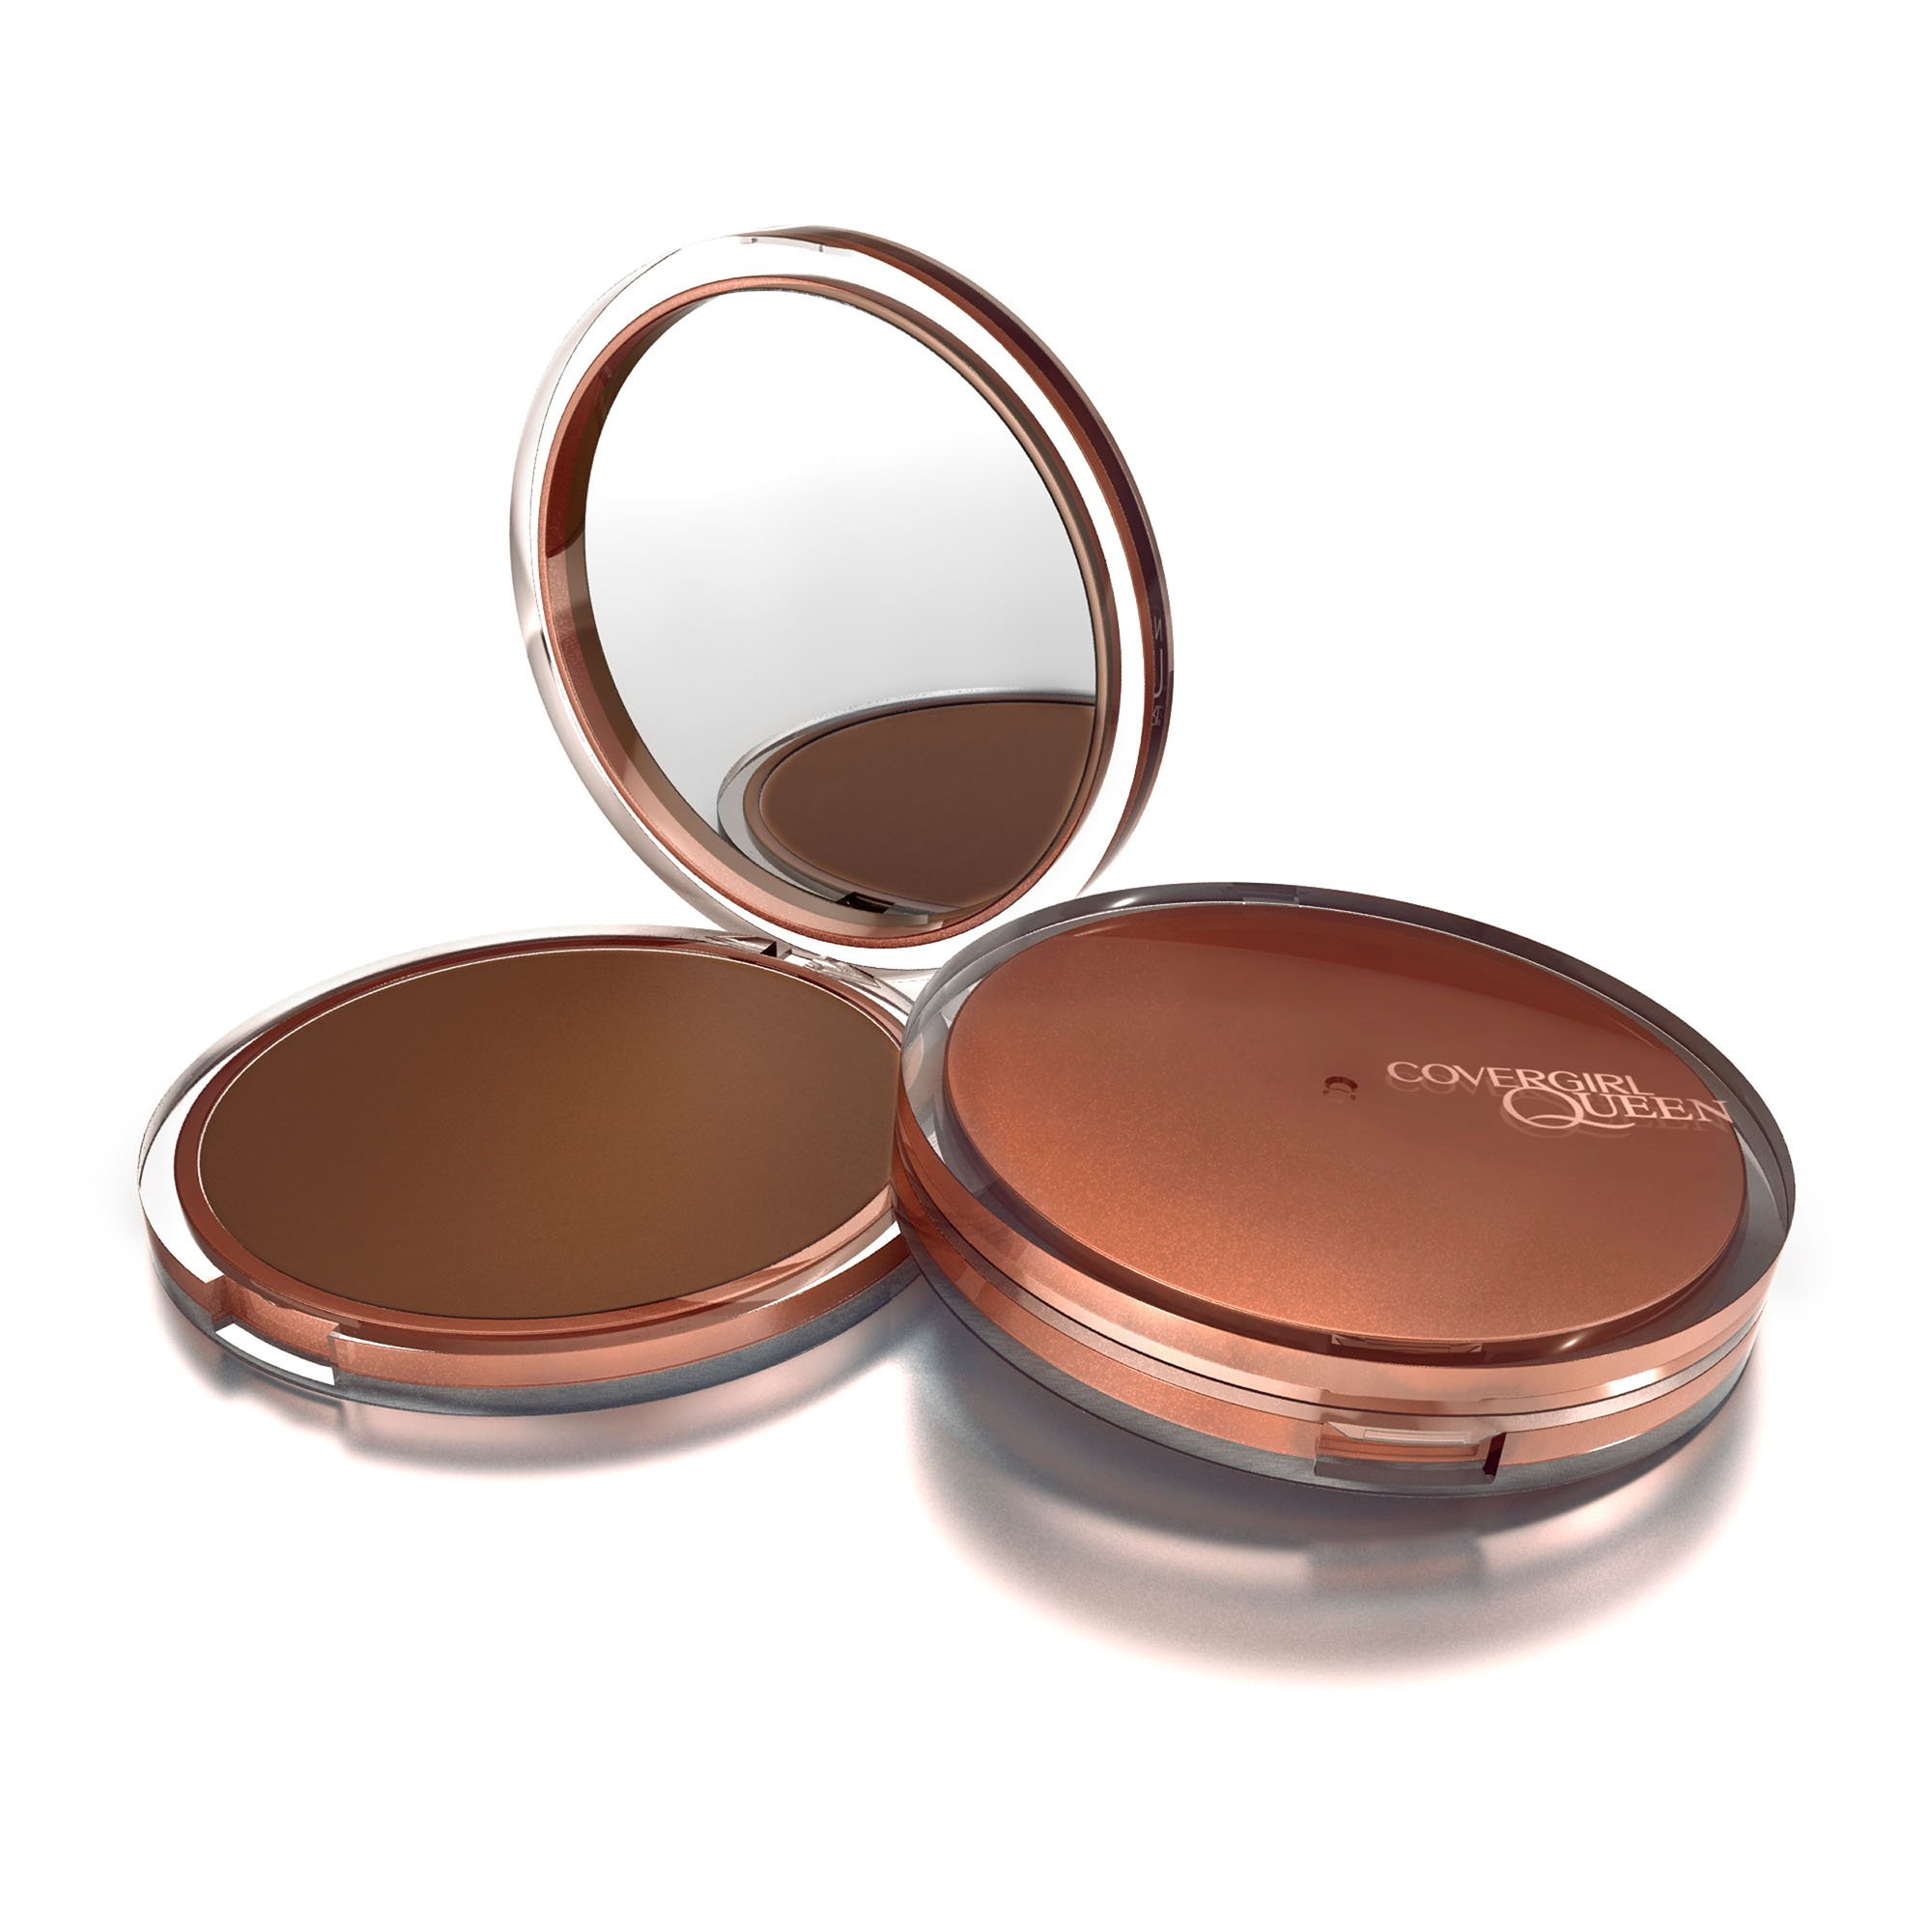 COVERGIRL Queen Collection Natural Hue Mineral Bronzer, 1 Container (0.39 oz), Ebony Bronze Tone, Hypoallergenic, For Darker Skin Tones